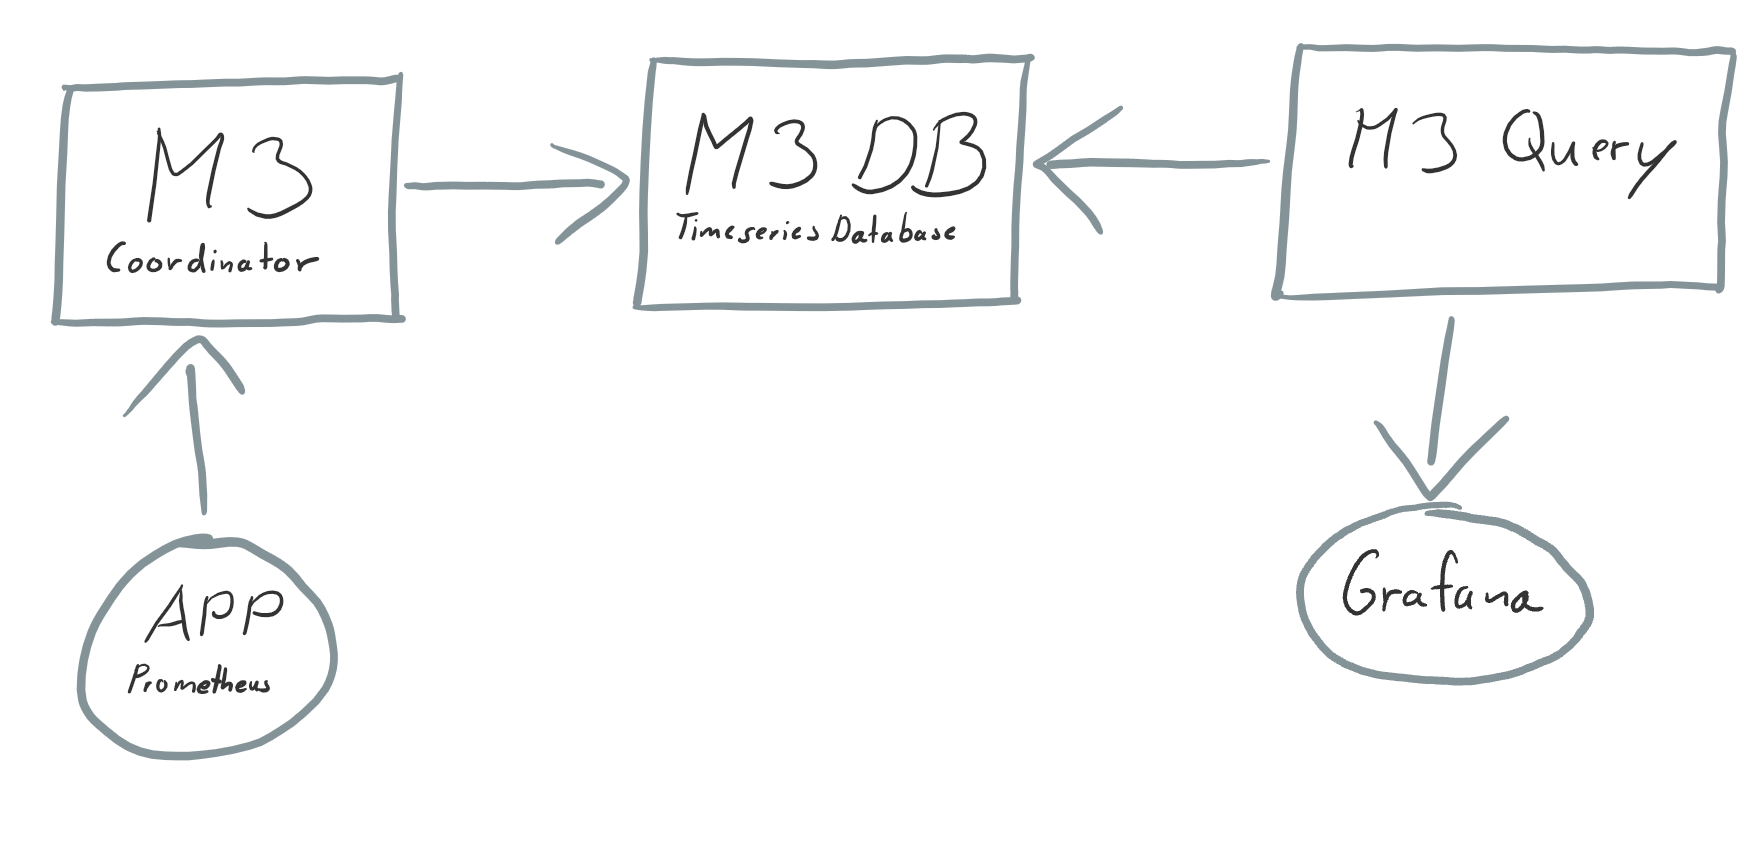 A diagram how M3 works